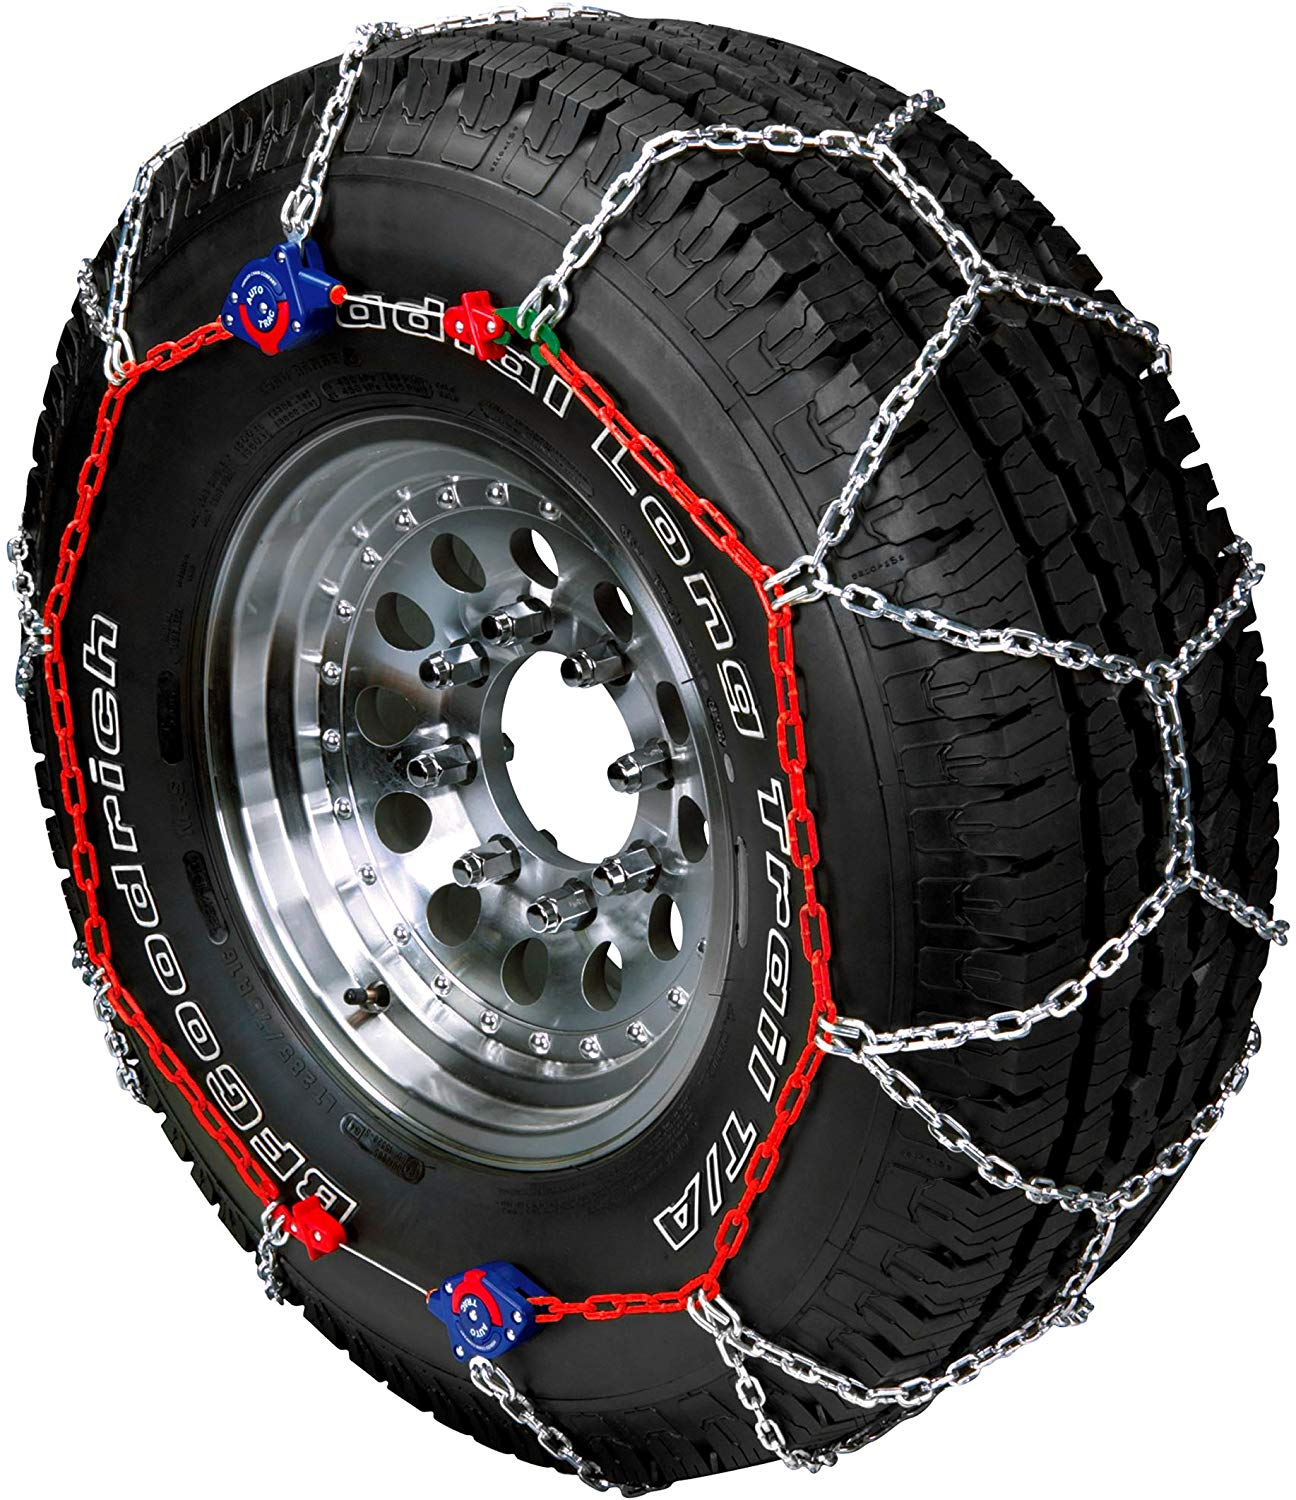 Peerless 0232805 Auto-Trac Light Truck/SUV Tire Traction Chain